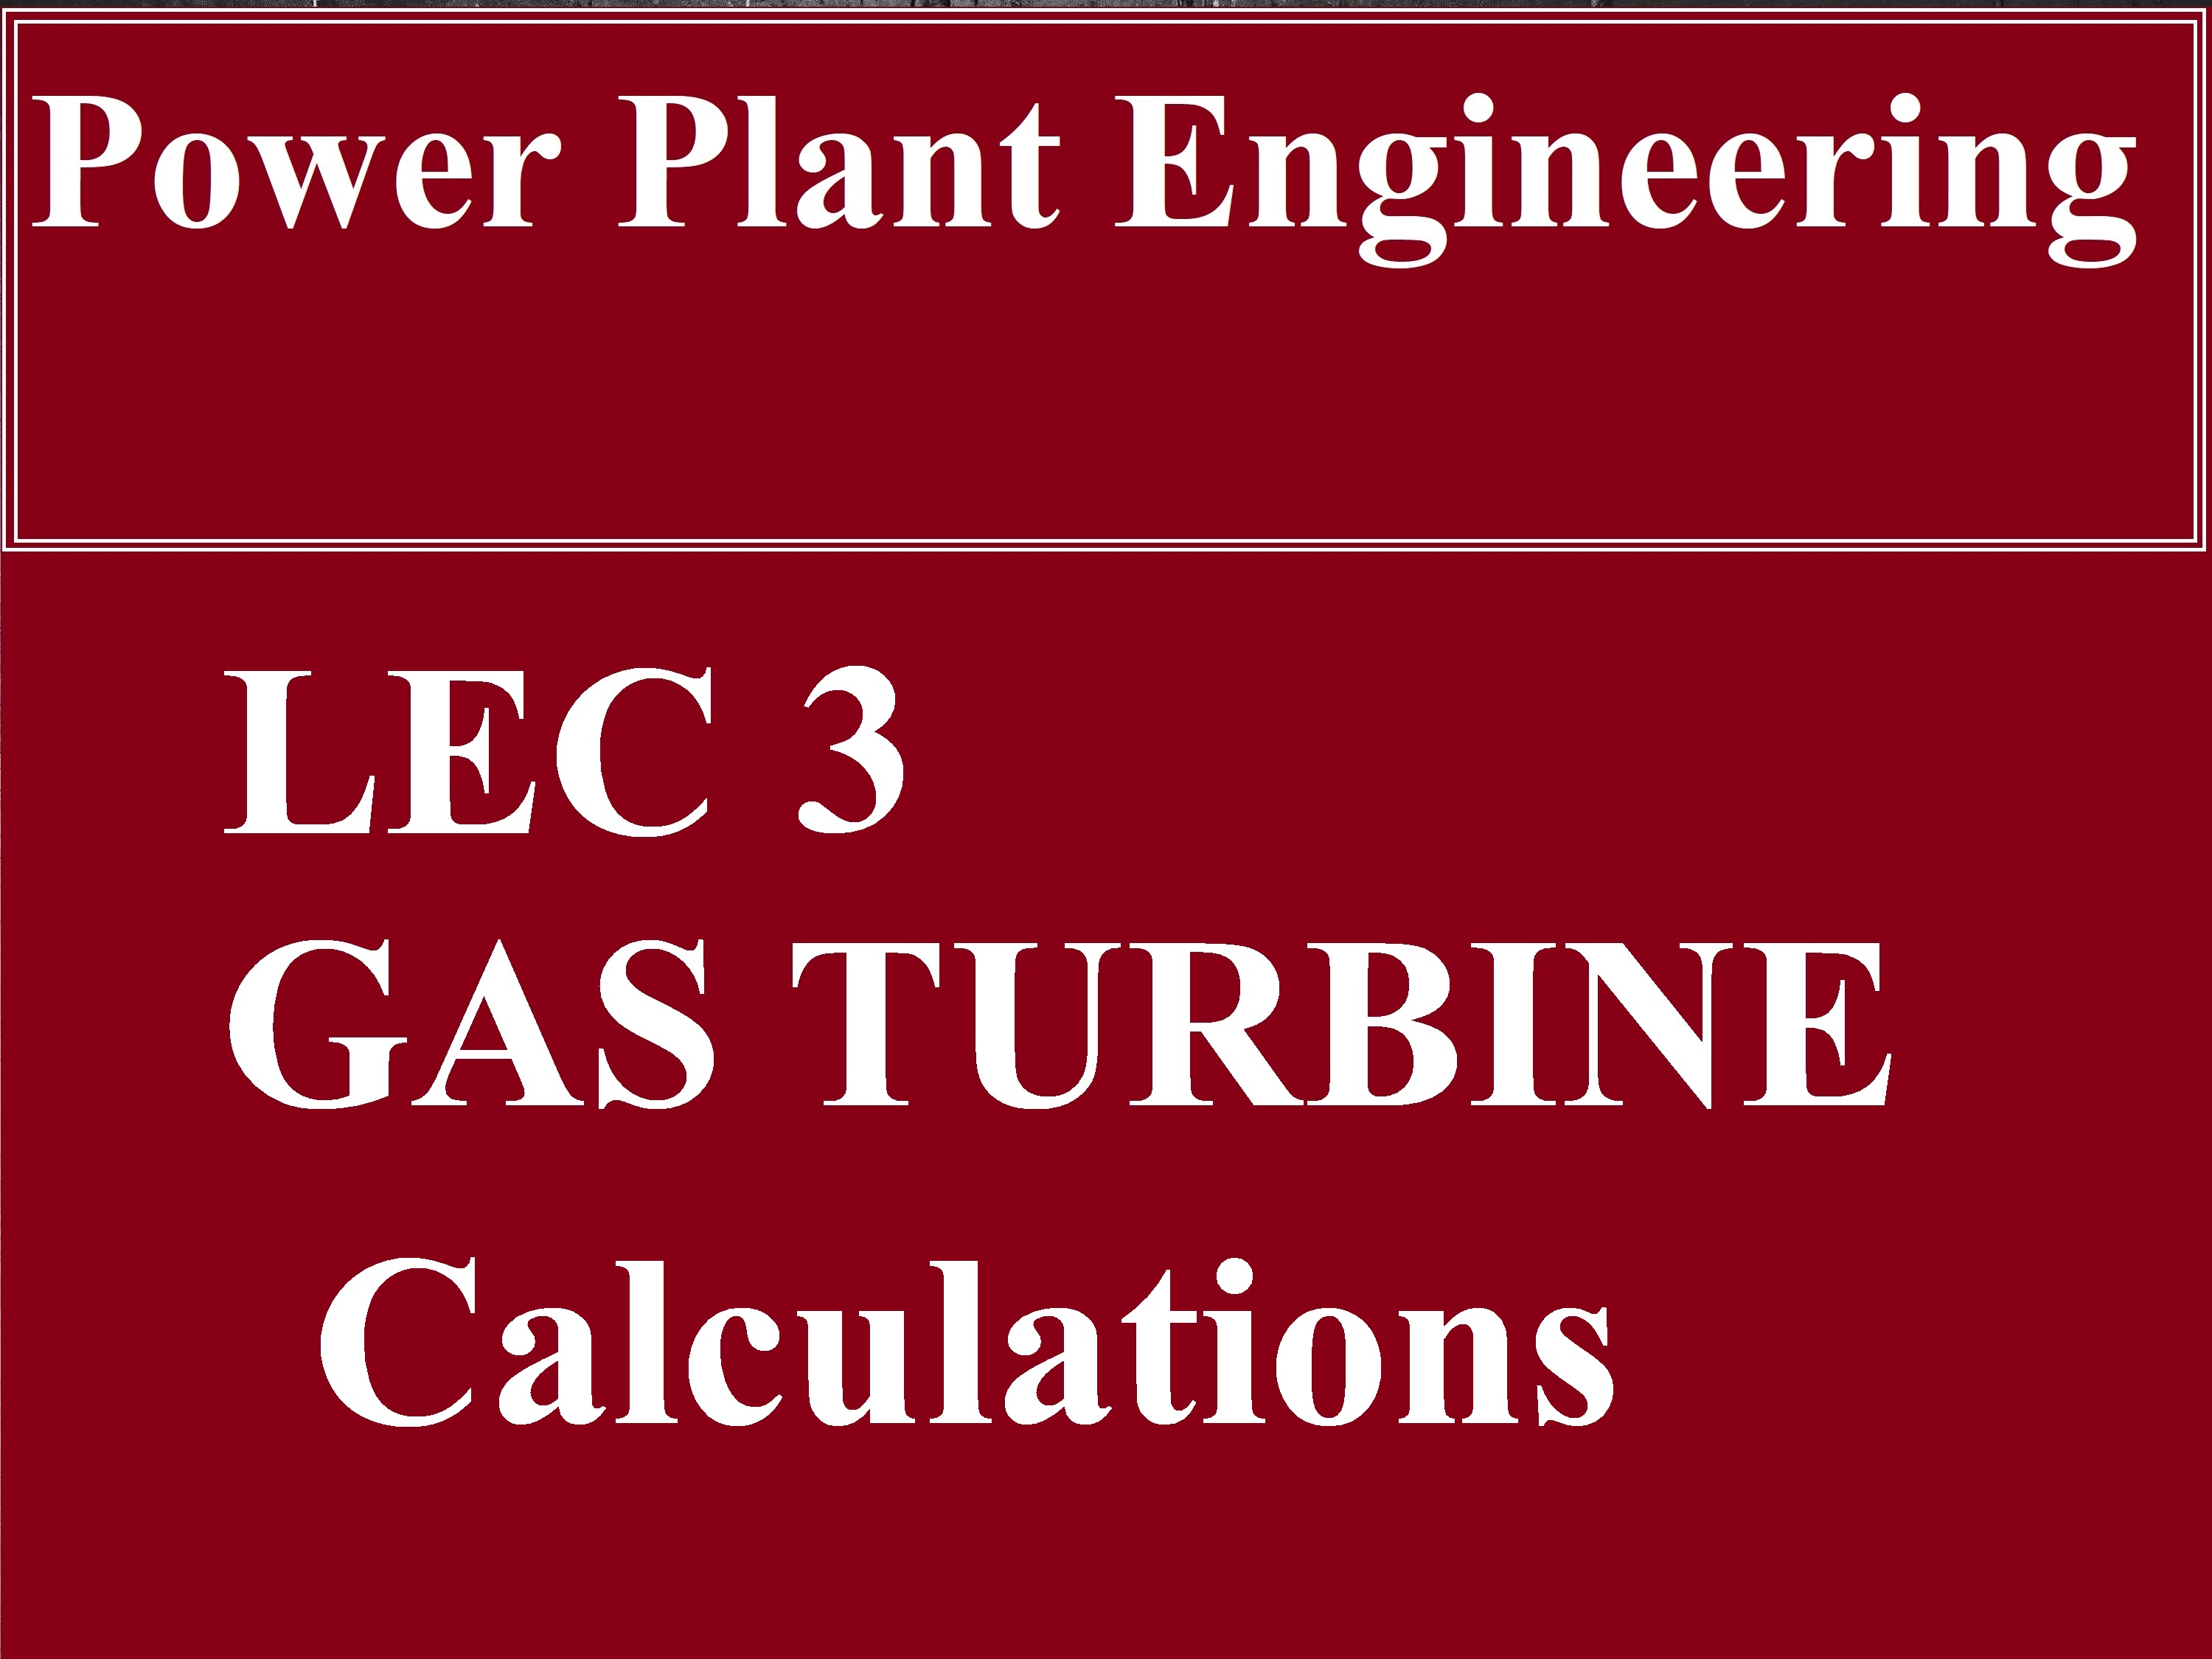 Lec 3 Power Plant (Gas Turbine calculations and effects)